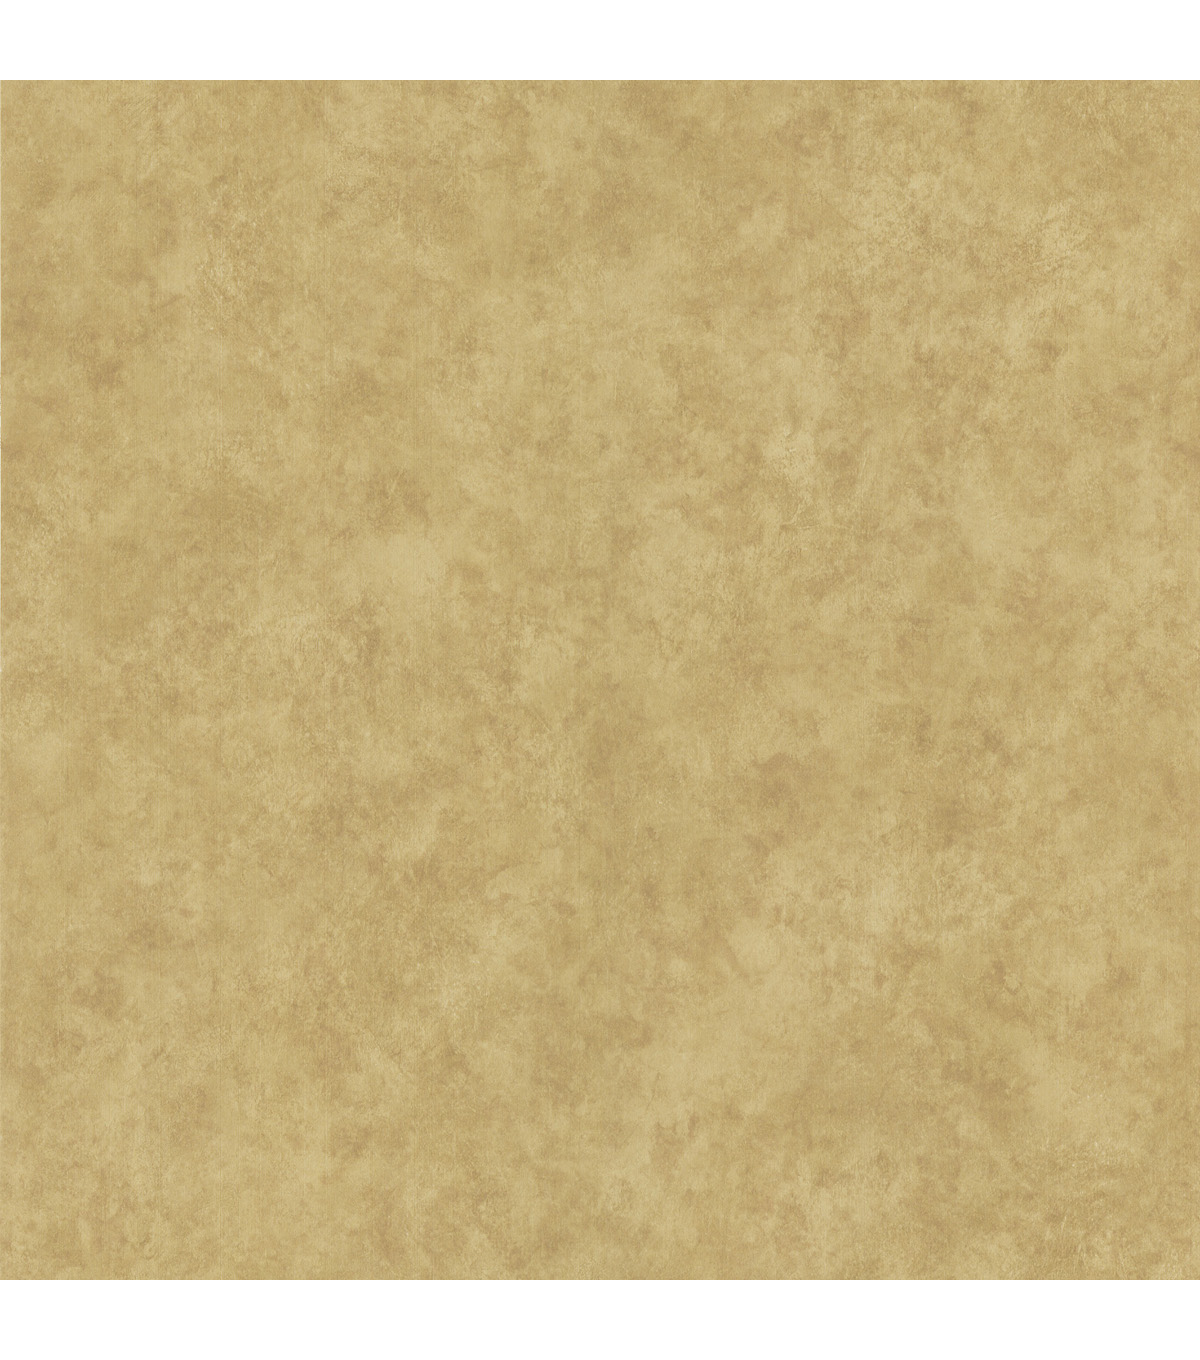 Oxbow Light Brown Texture Wallpaper Sample